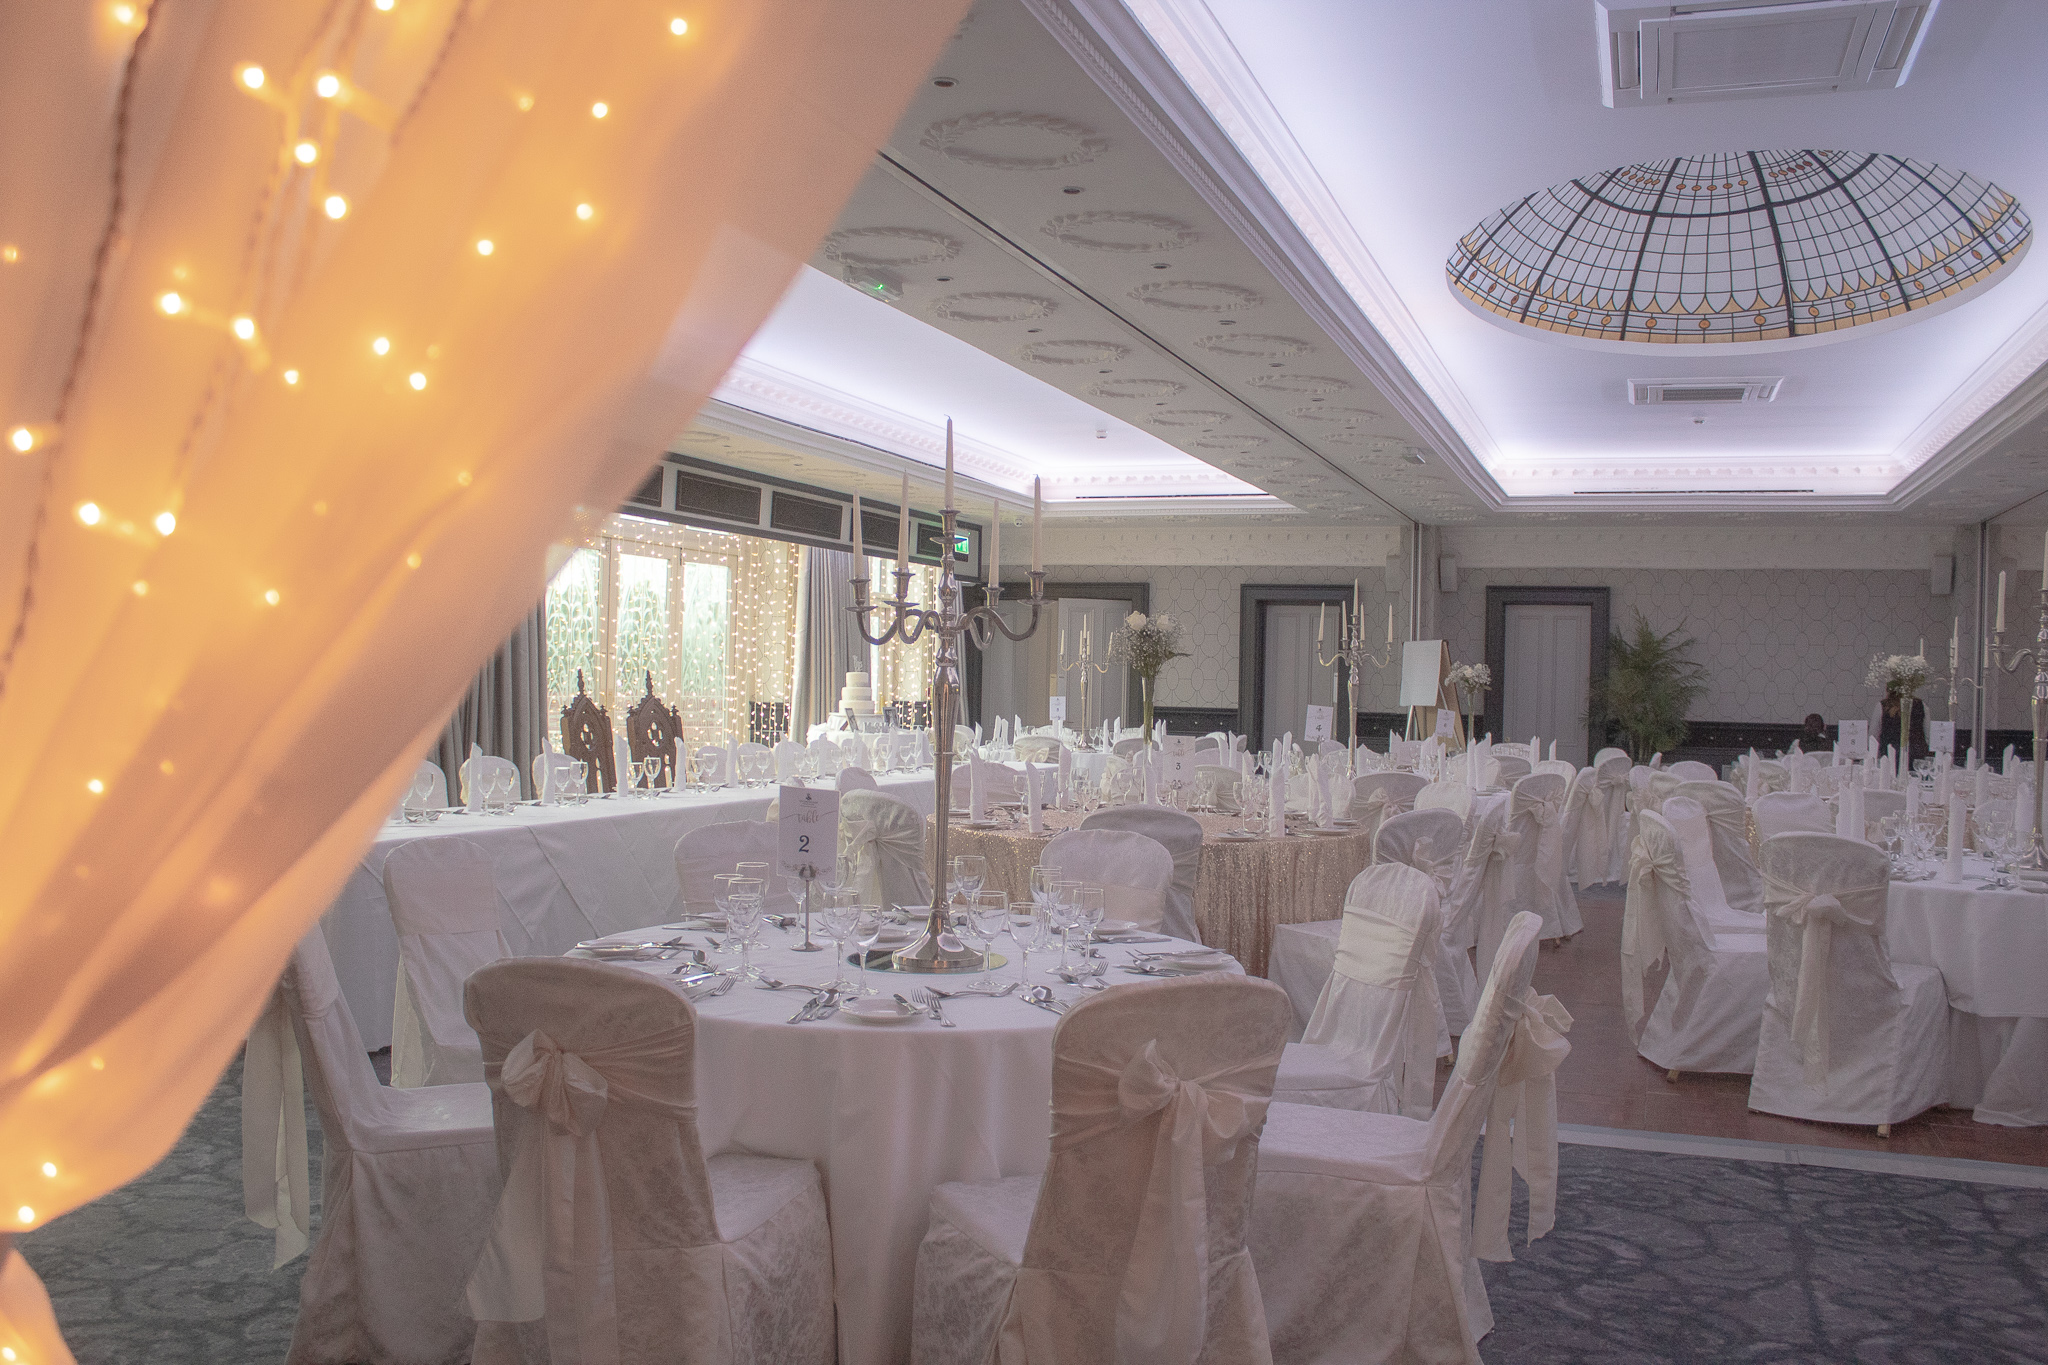 Elegant Muckross Park Hotel is a Classic Venue for a Wedding, surrounded in a country setting with Muckross House on your door step. Beautiful decor, amazing food and great customer service. Muckross Park Hotel is your ultimate Wedding Venue.